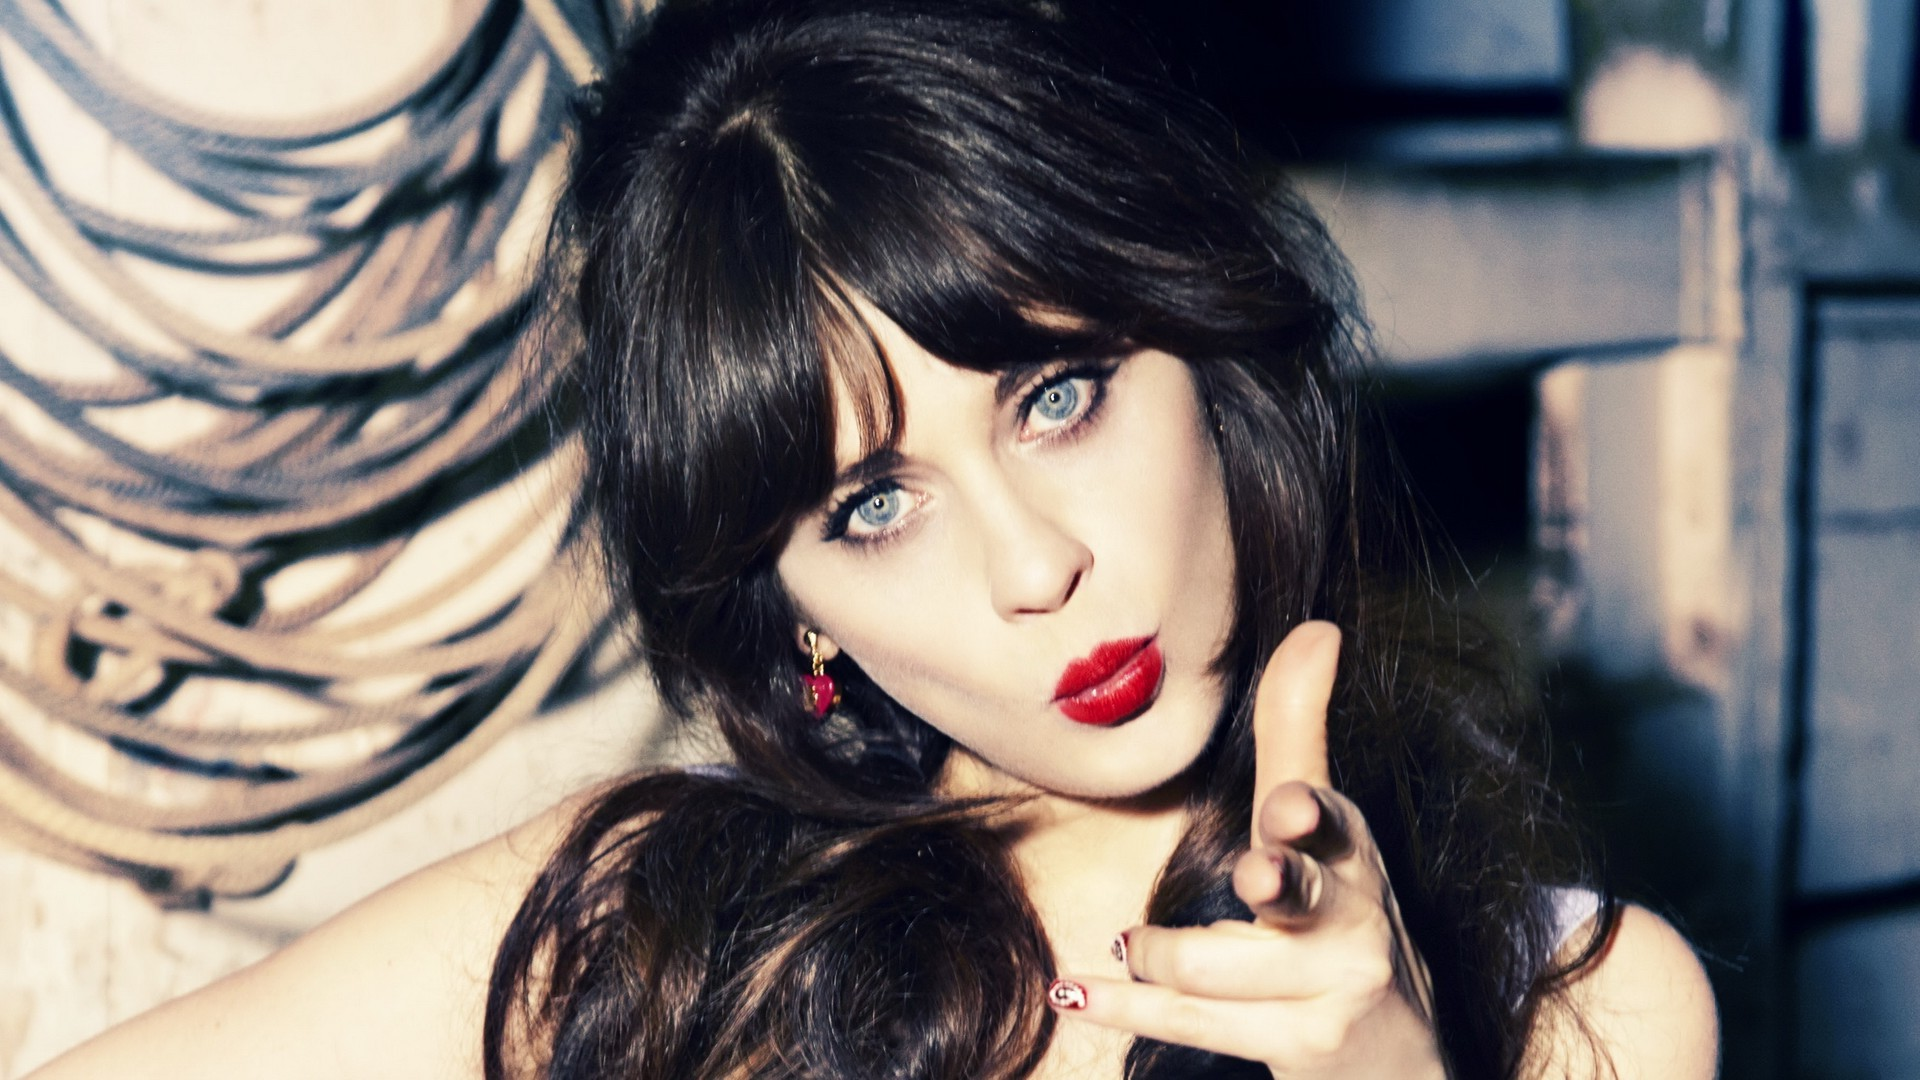 zooey deschanel википедияzooey deschanel hello, zooey deschanel hello скачать, zooey deschanel 2017, zooey deschanel 2016, zooey deschanel sherlock, zooey deschanel gif, zooey deschanel sugar town, zooey deschanel katy perry, zooey deschanel hello перевод, zooey deschanel vk, zooey deschanel sugar town перевод, zooey deschanel and joseph gordon-levitt, zooey deschanel википедия, zooey deschanel фото, zooey deschanel фильмография, zooey deschanel hello минус, zooey deschanel wiki, zooey deschanel dance, zooey deschanel ukulele, zooey deschanel yes man перевод